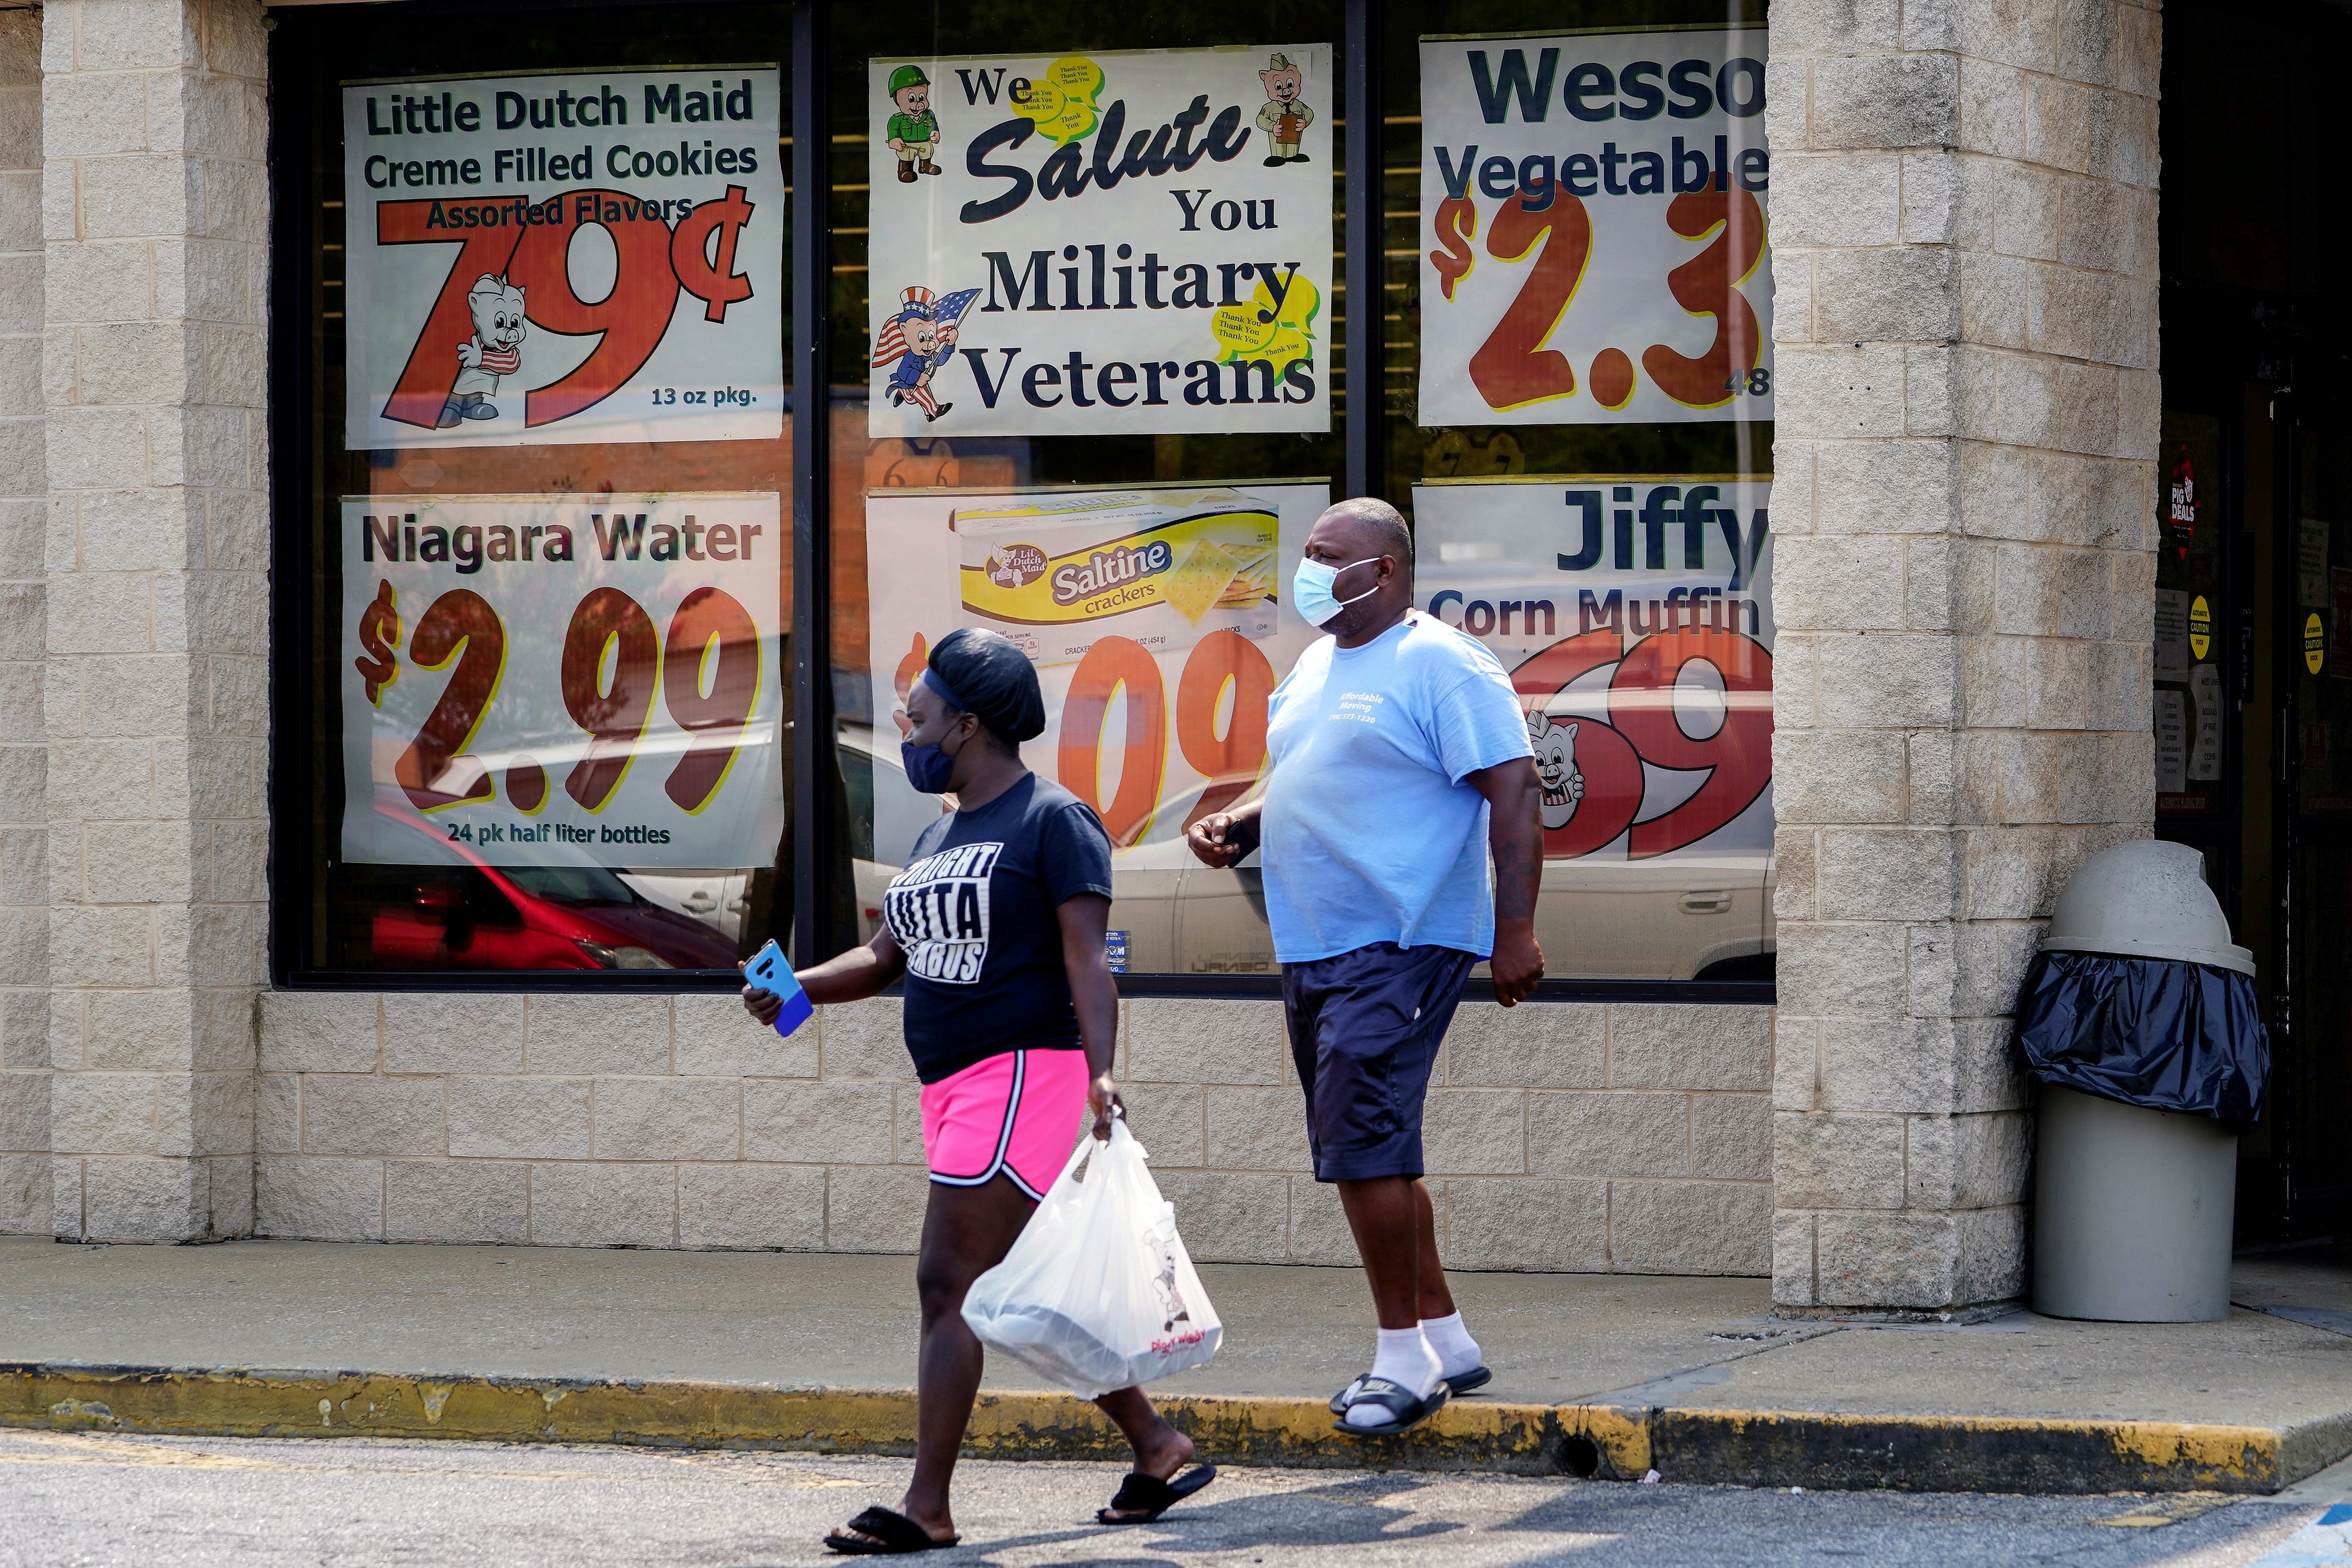 Shoppers leave a Piggly Wiggly supermarket with a sign honoring veterans in its window in Columbus, Georgia, U.S. September 8, 2020. REUTERS/Elijah Nouvelage/File Photo